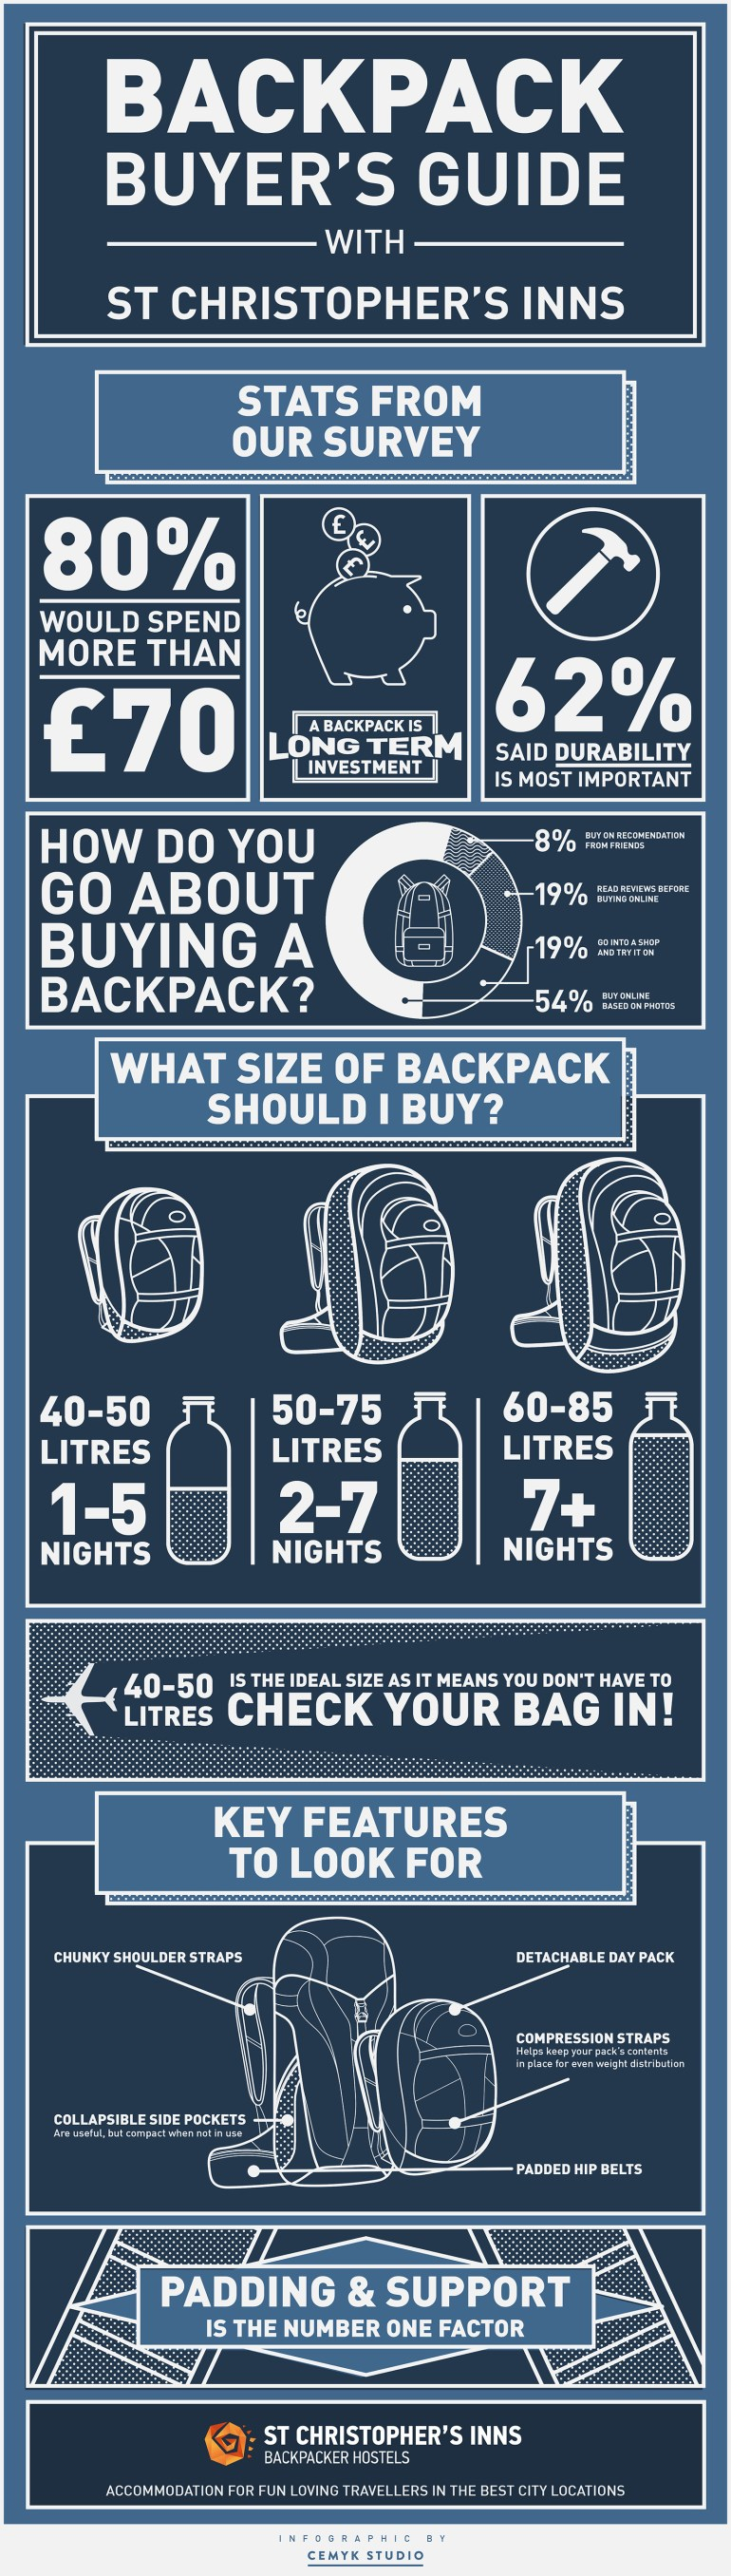 BACKPACK-INFOGRAPHIC-1600